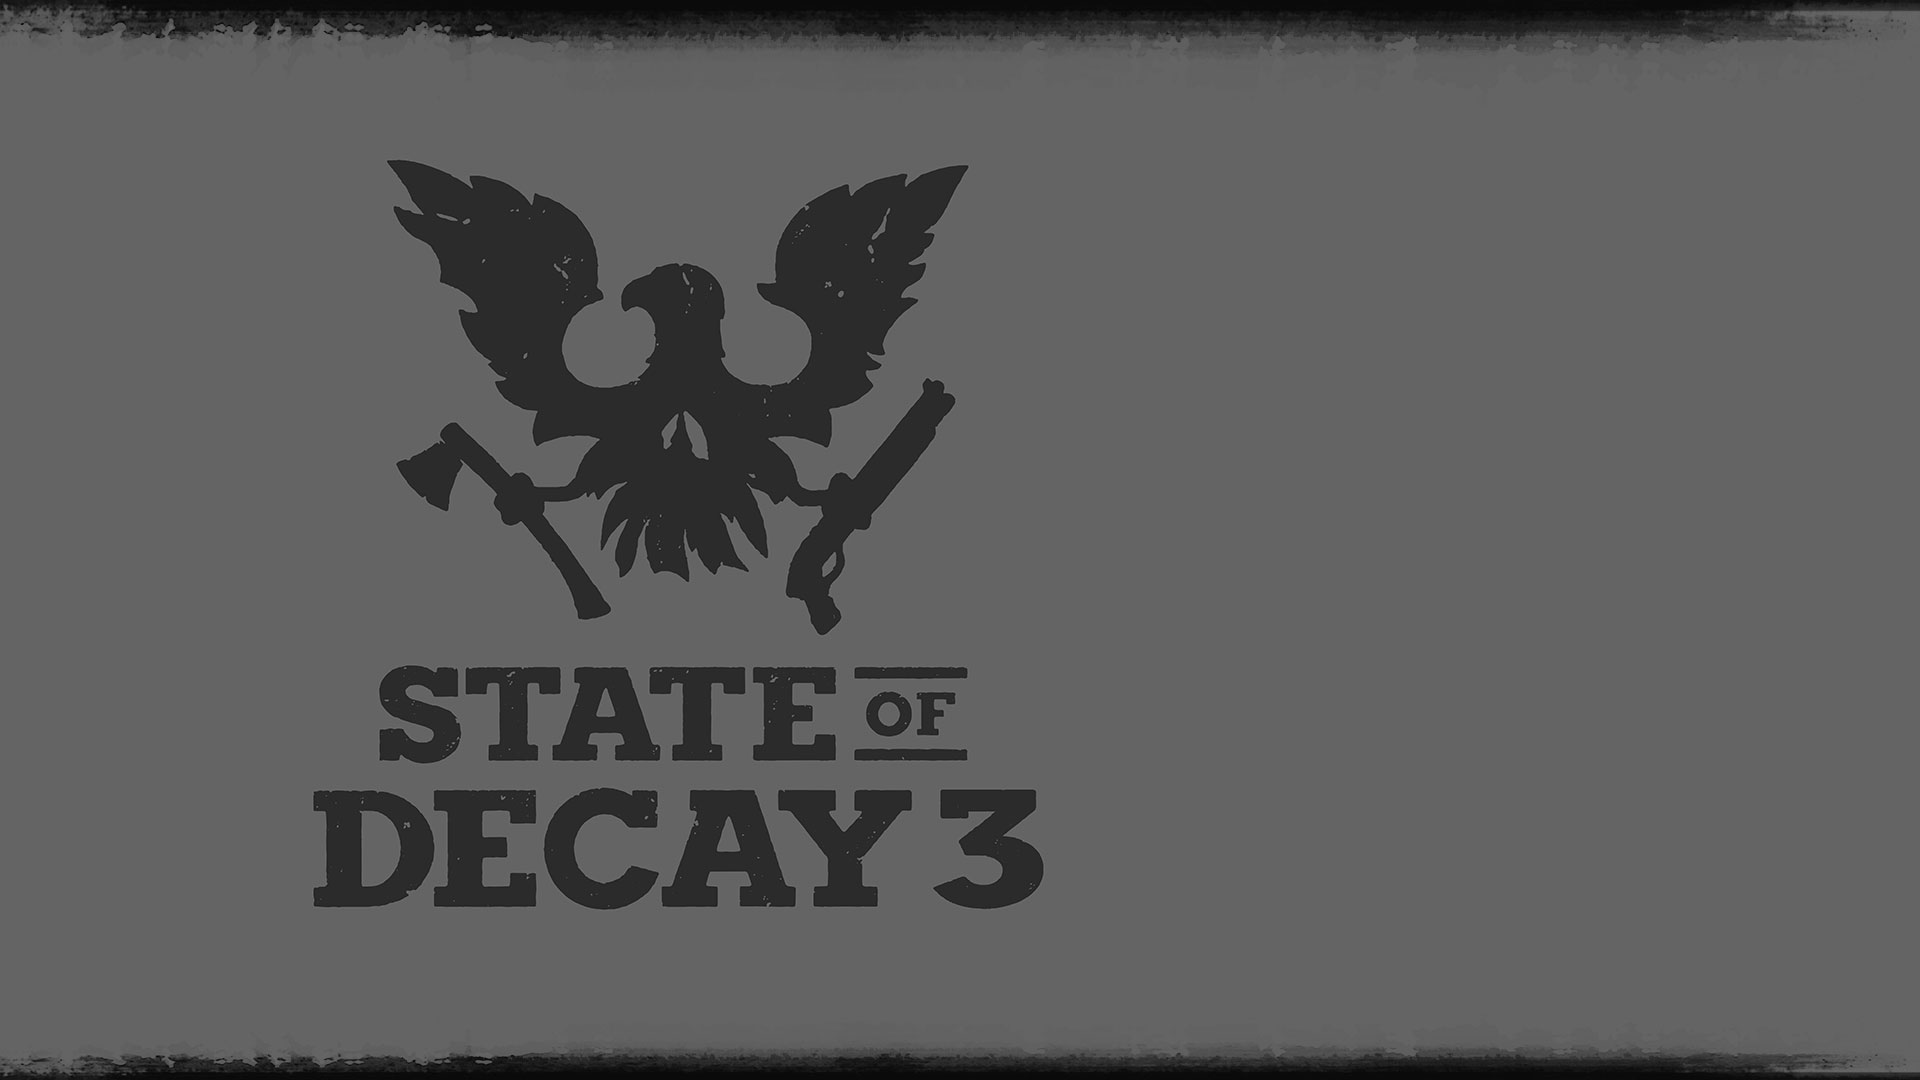 State of Decay 3 logo